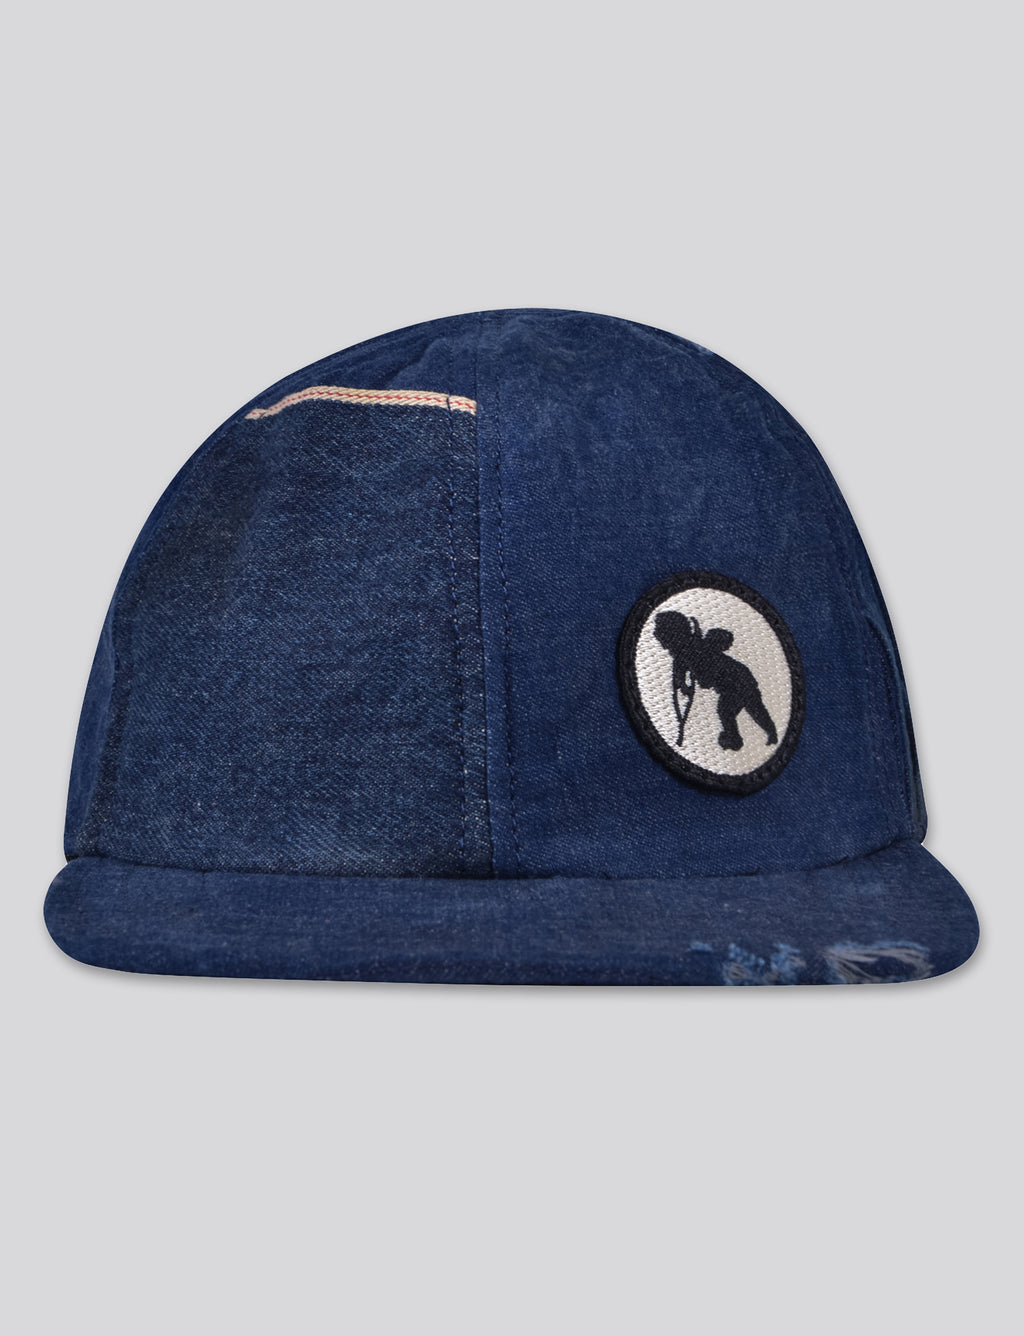 Prps - #10 Japanese Selvedge 6 Panel Hat - Hat - Prps